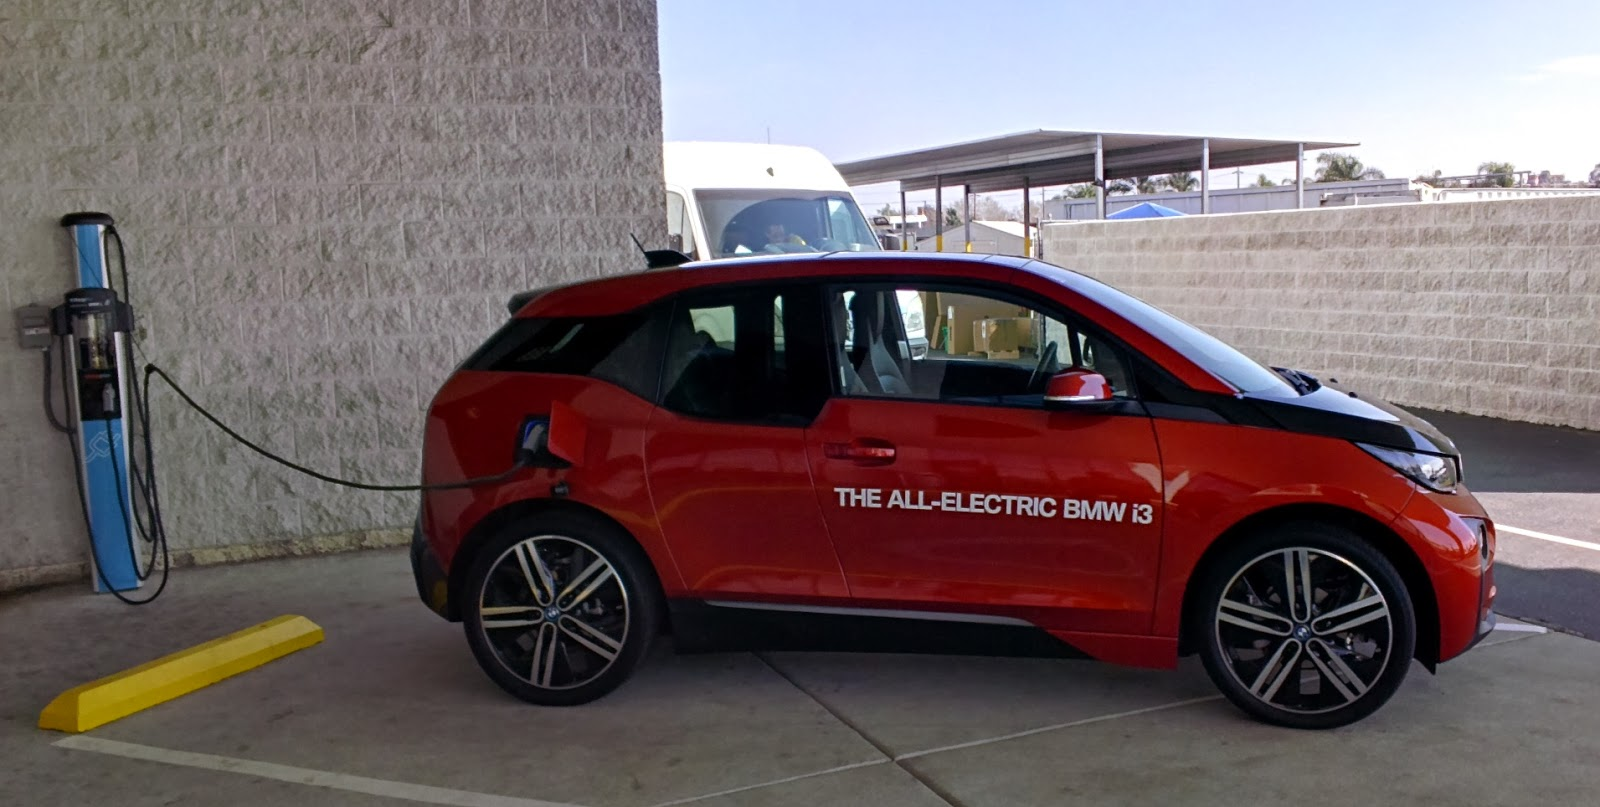 scott lawrence lawson thoughts test drive bmw i3 electric car with google glass. Black Bedroom Furniture Sets. Home Design Ideas